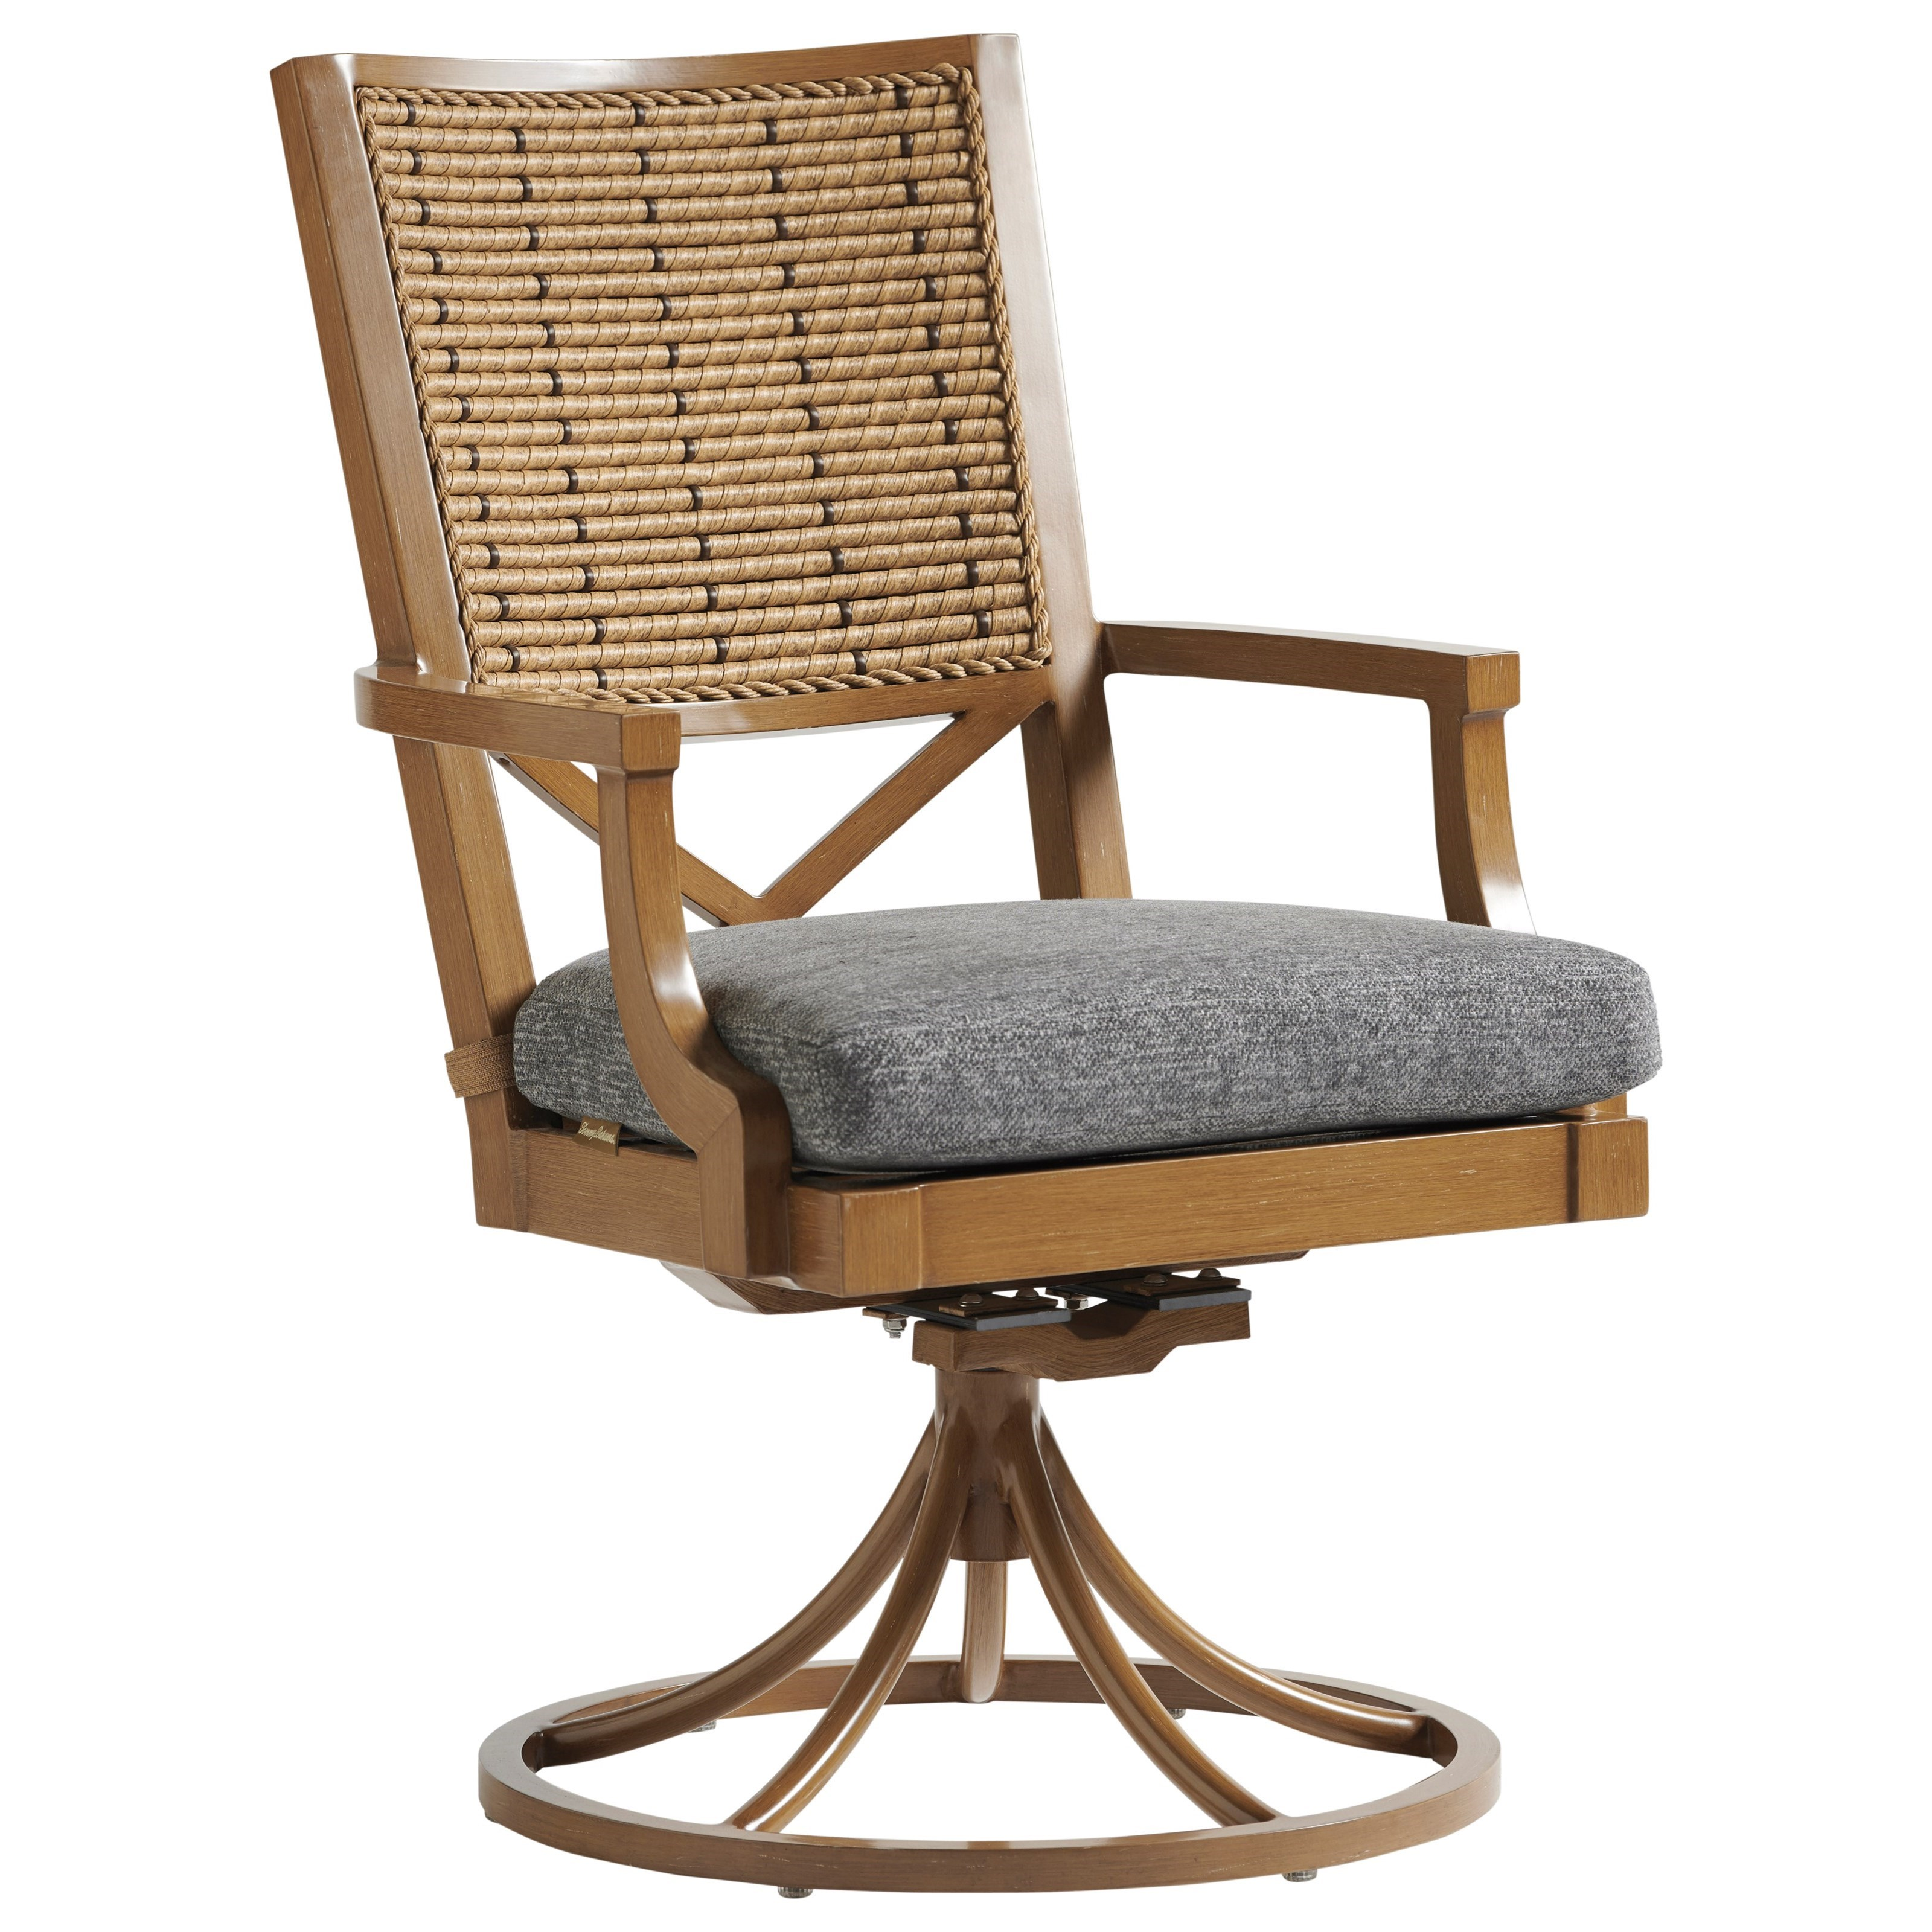 Los Altos Valley View Swivel Rocker Dining Chair by Tommy Bahama Outdoor Living at Malouf Furniture Co.